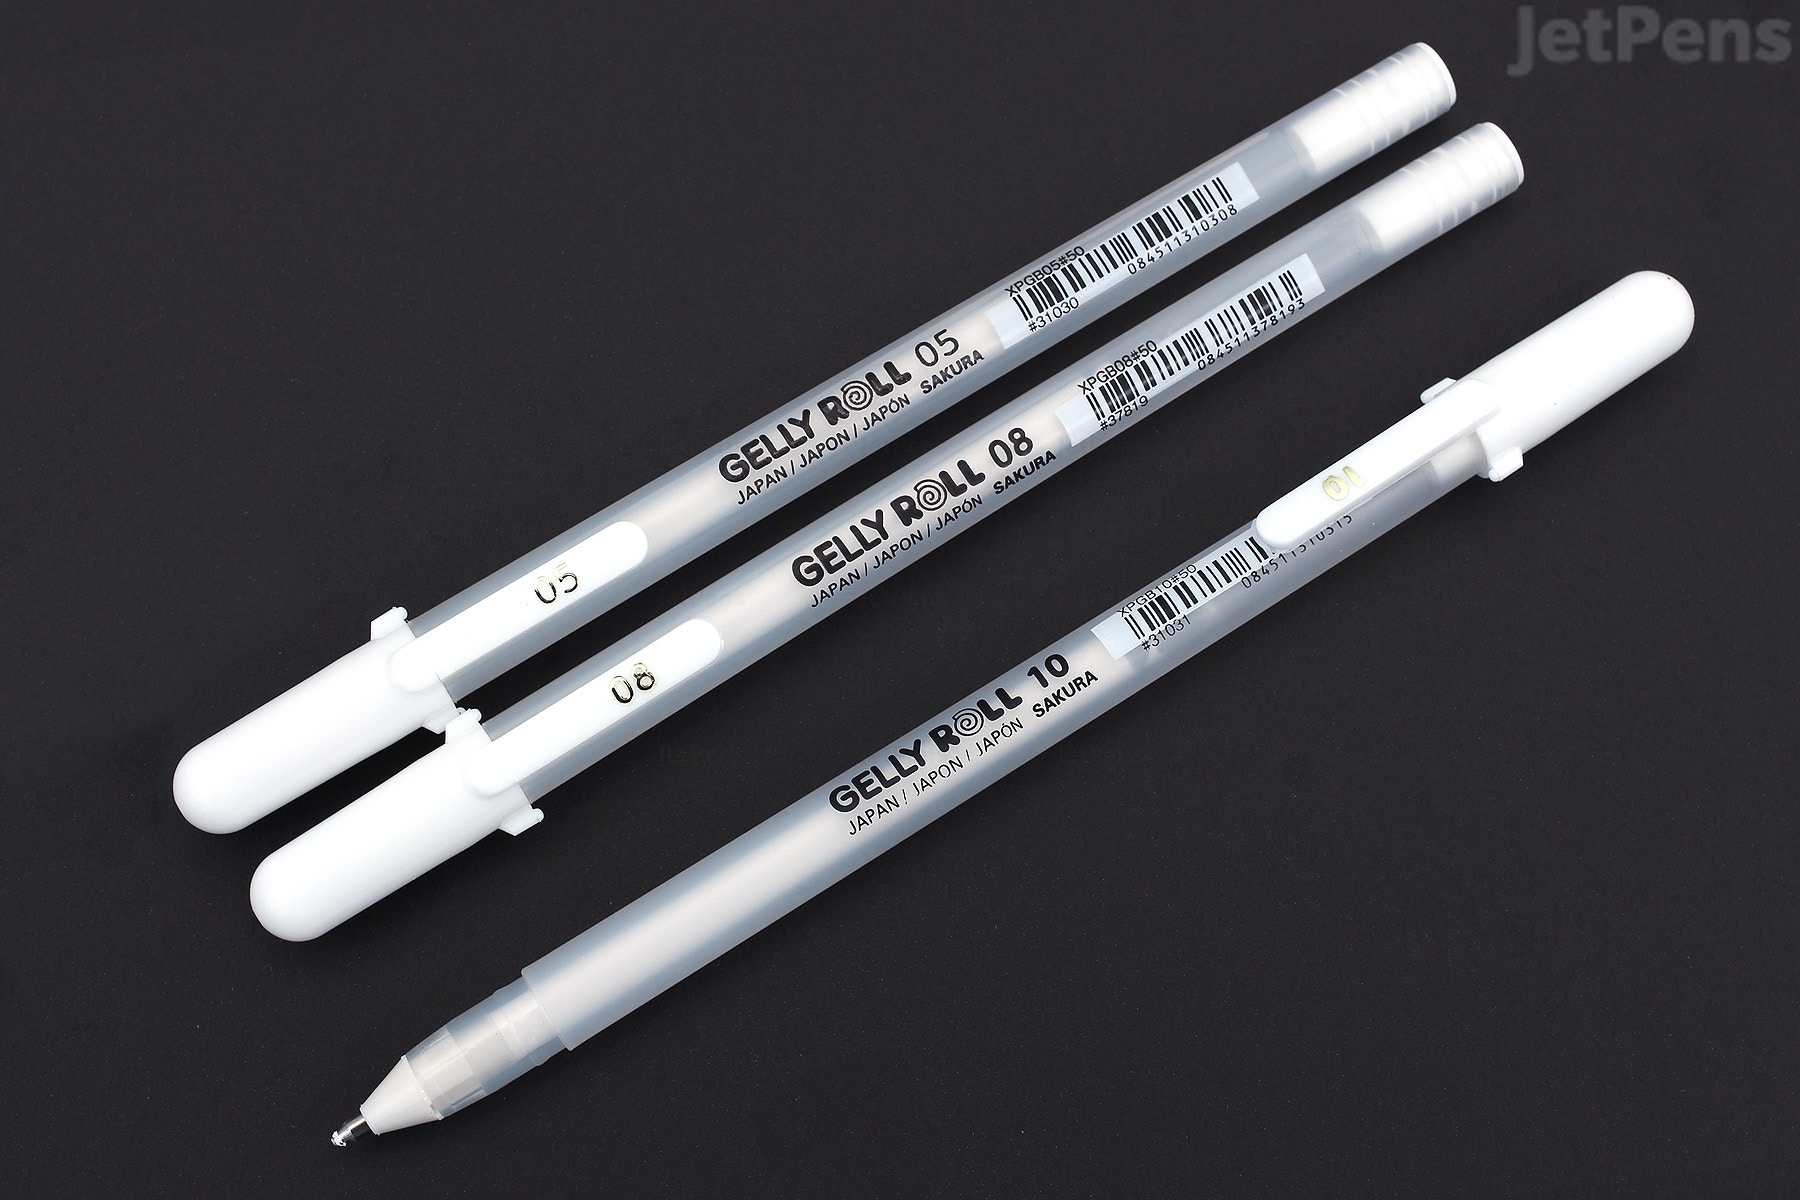 The Best White Ink Pens Jetpens